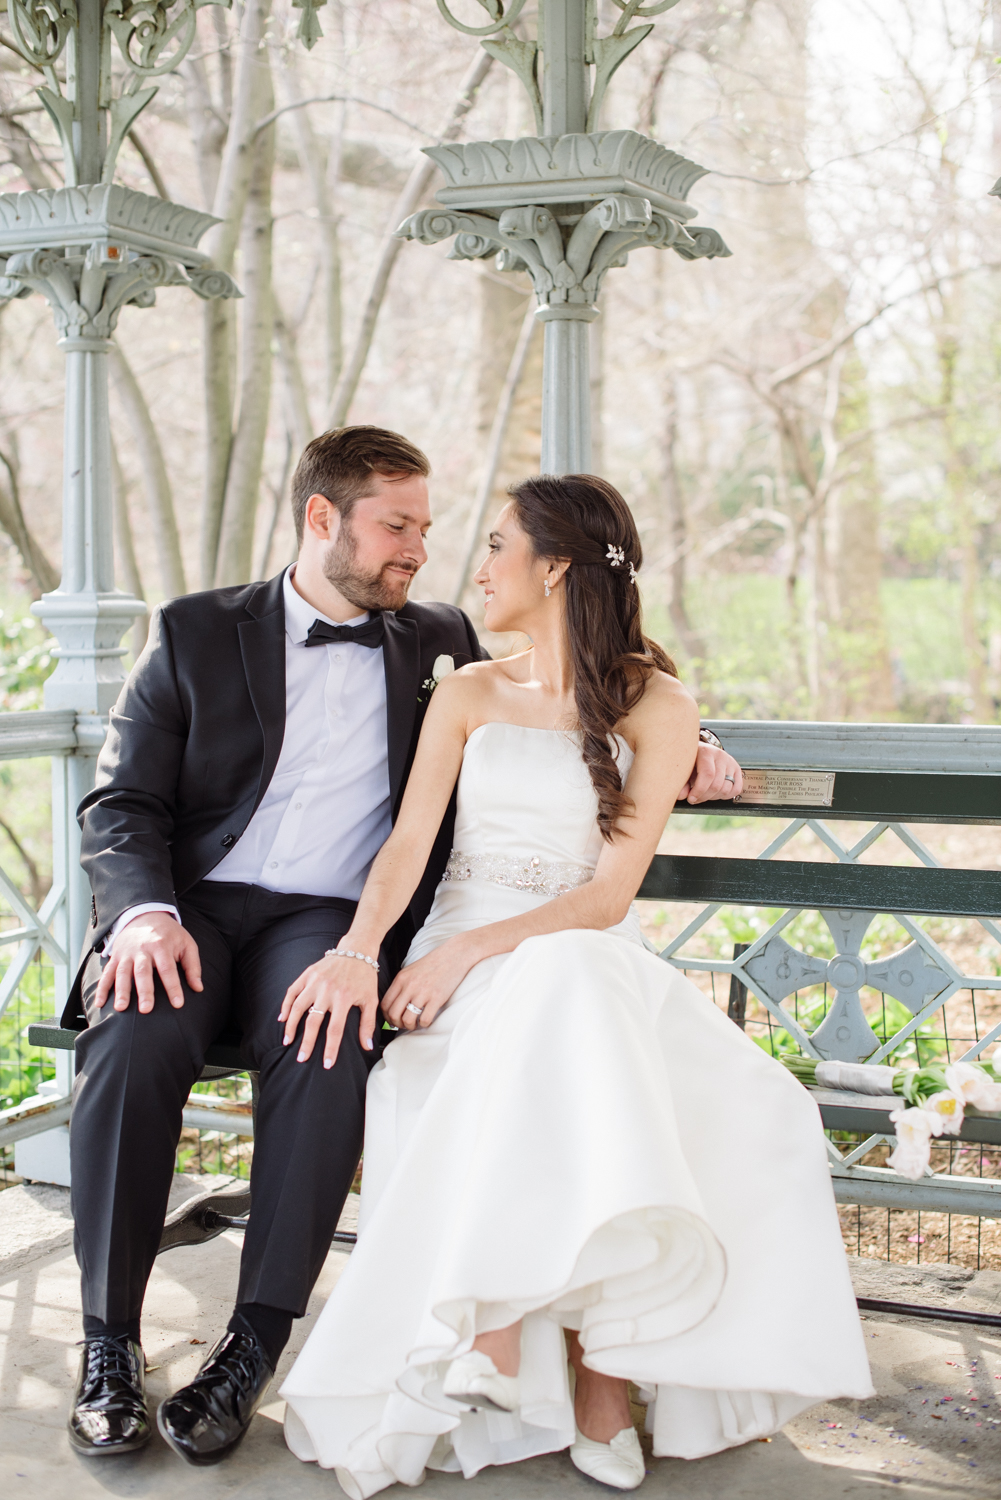 Anahi+David- Central Park Elopement- New York City- Olivia Christina Photo (199).JPG